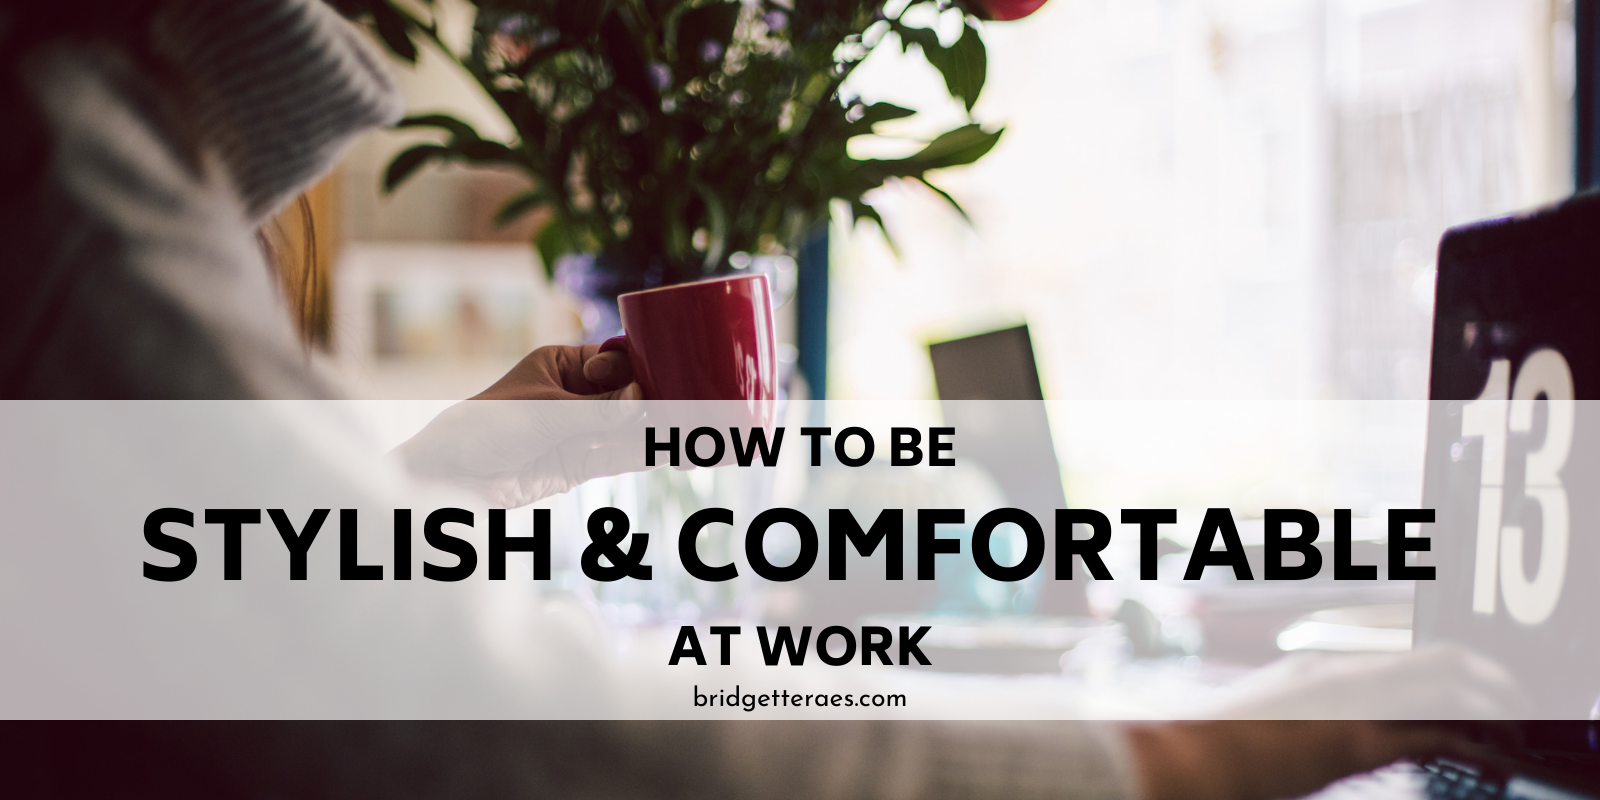 How to be Stylish and Comfortable at Work